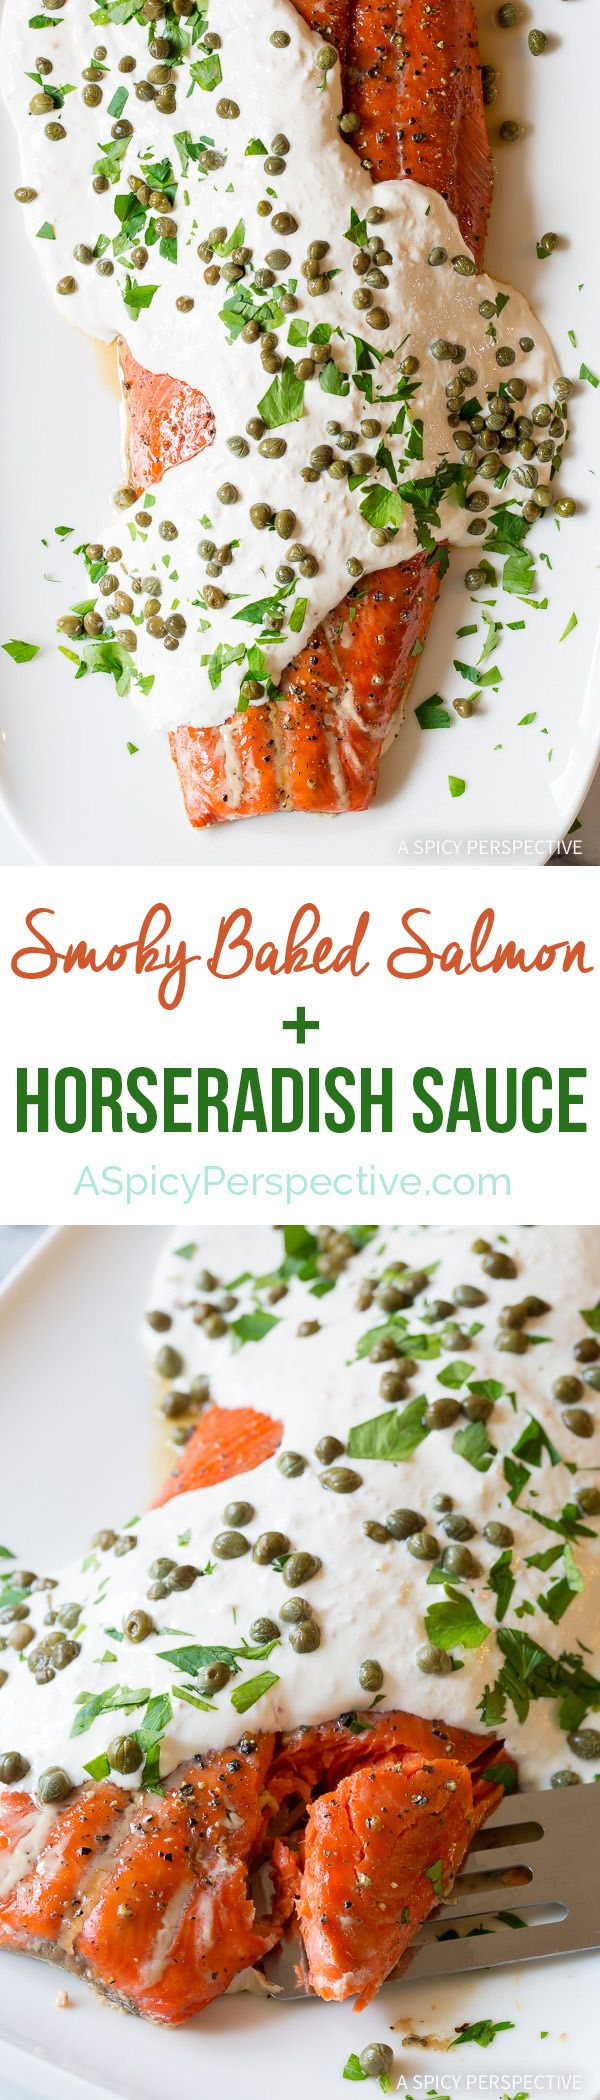 Amazing 10-Ingredient Smoky Baked Salmon Recipe with Creamy Horseradish Sauce on ASpicyPerspective.com #holiday